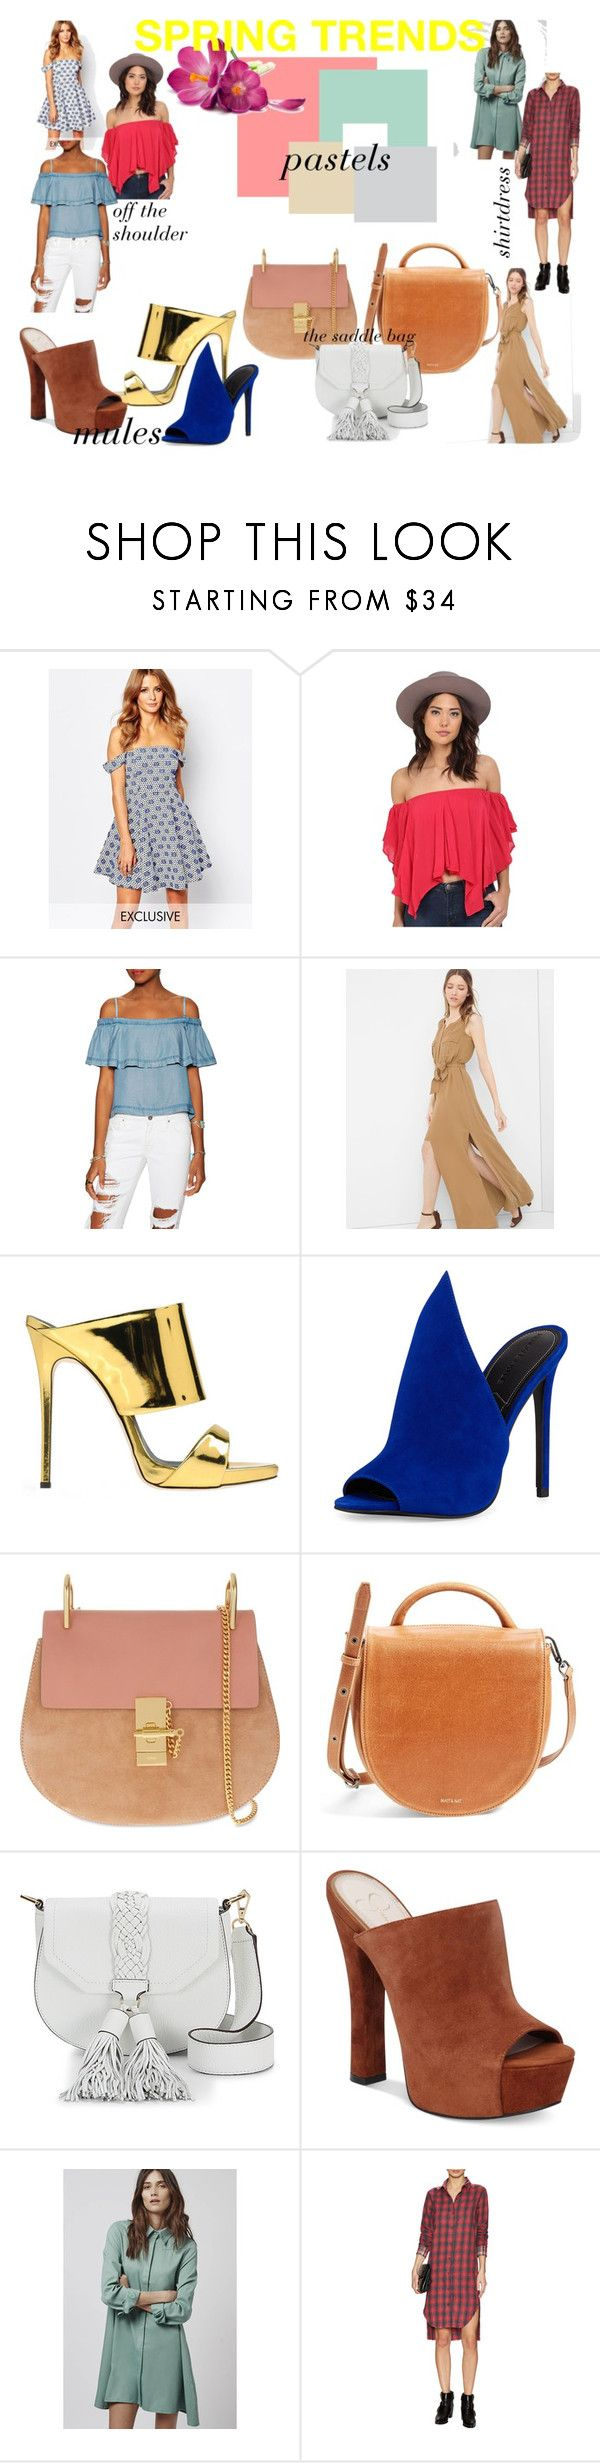 """""""spring trends"""" by reesemarcelle on Polyvore featuring Millie Mackintosh, Free People, White House Black Market, Giuseppe Zanotti, Kendall + Kylie, Chloé, Matt & Nat, Rebecca Minkoff, Jessica Simpson and Topshop"""